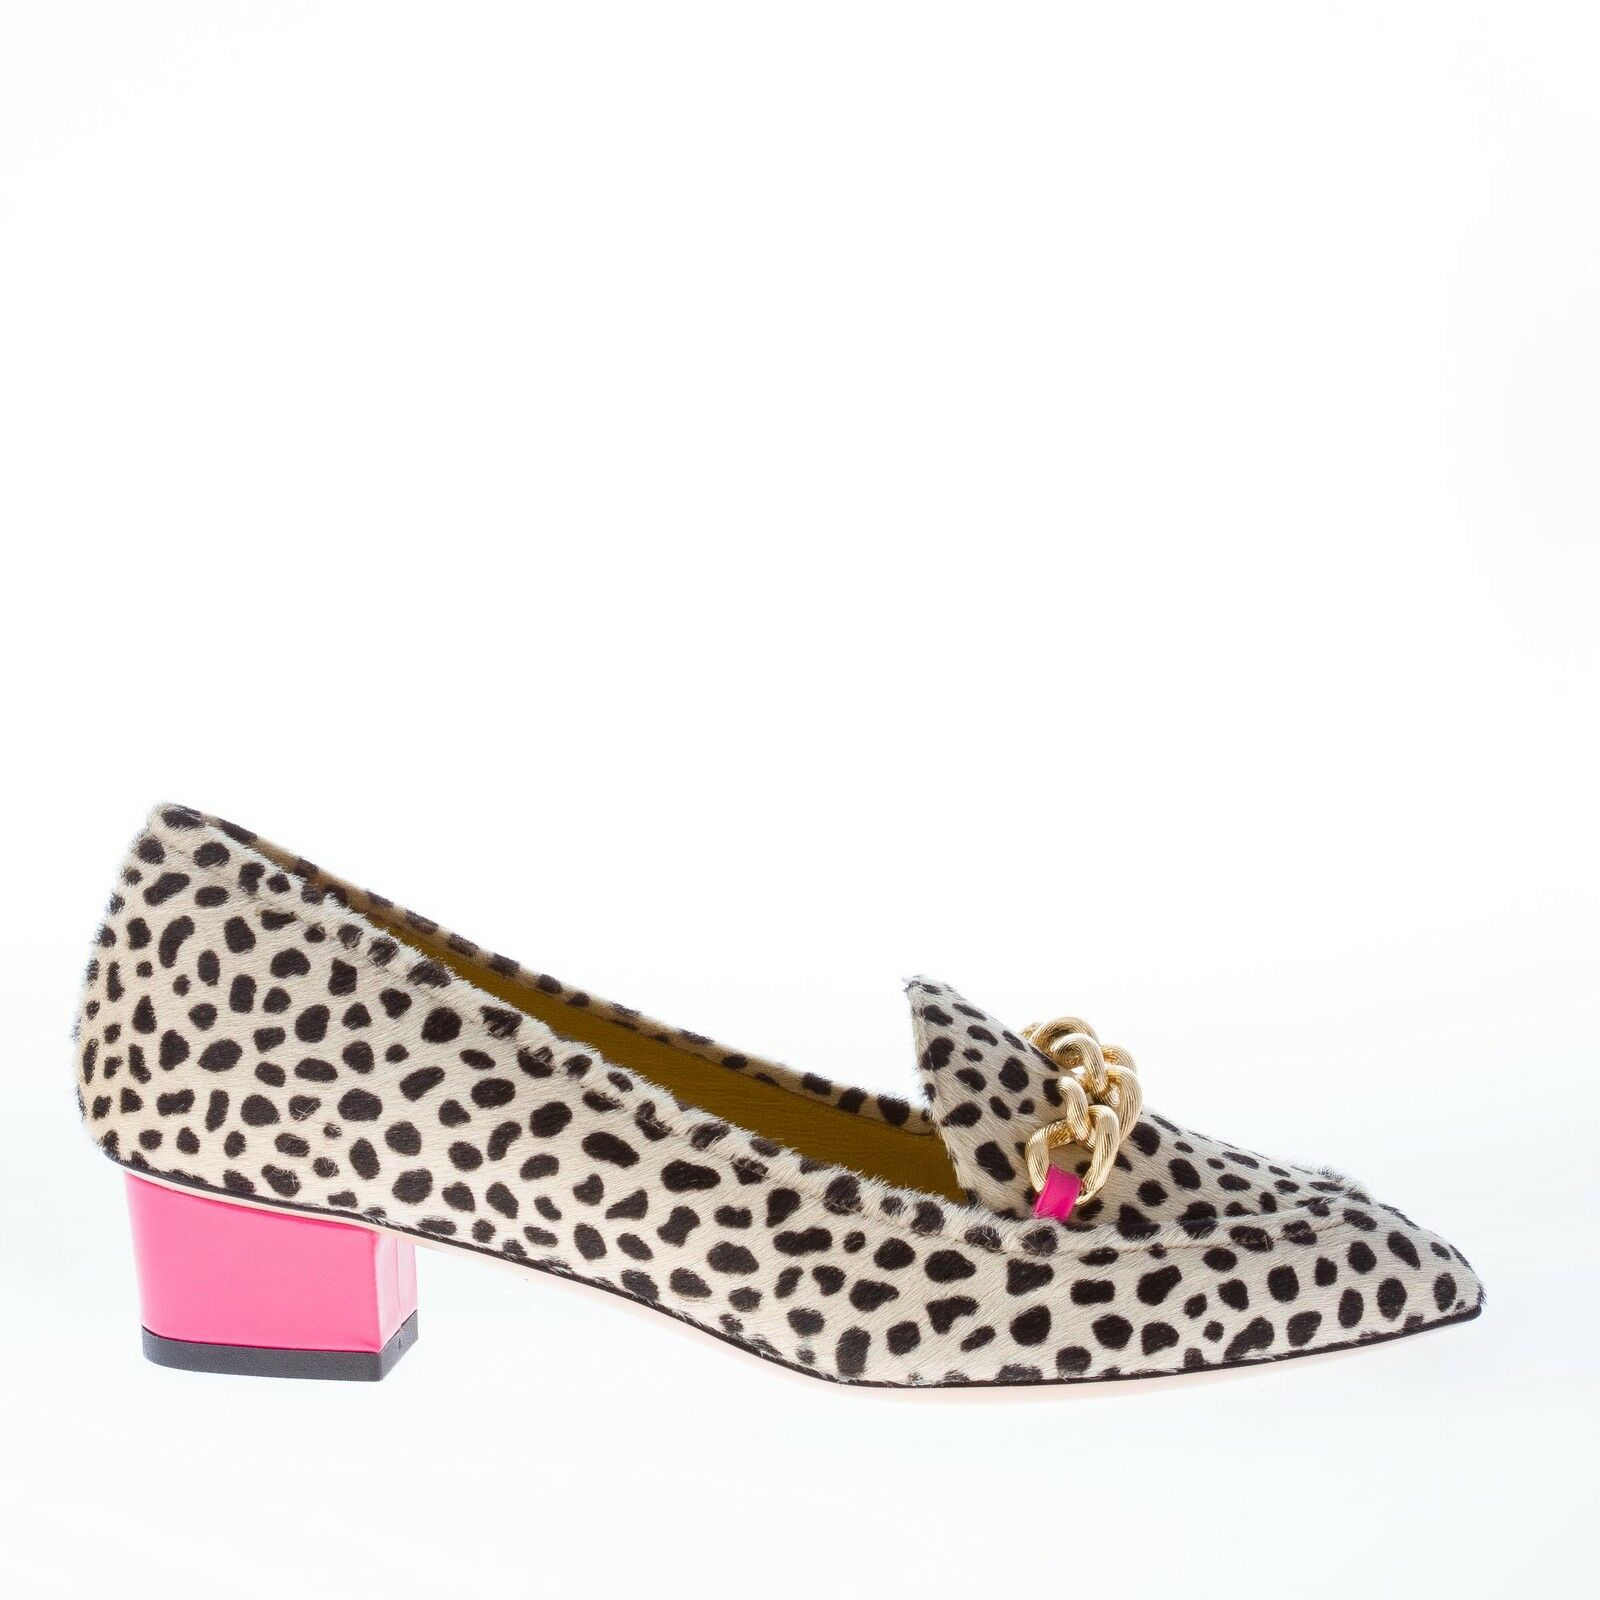 Charlotte olympia femmes chaussures francis mocassin dans cheetah print ponyskin